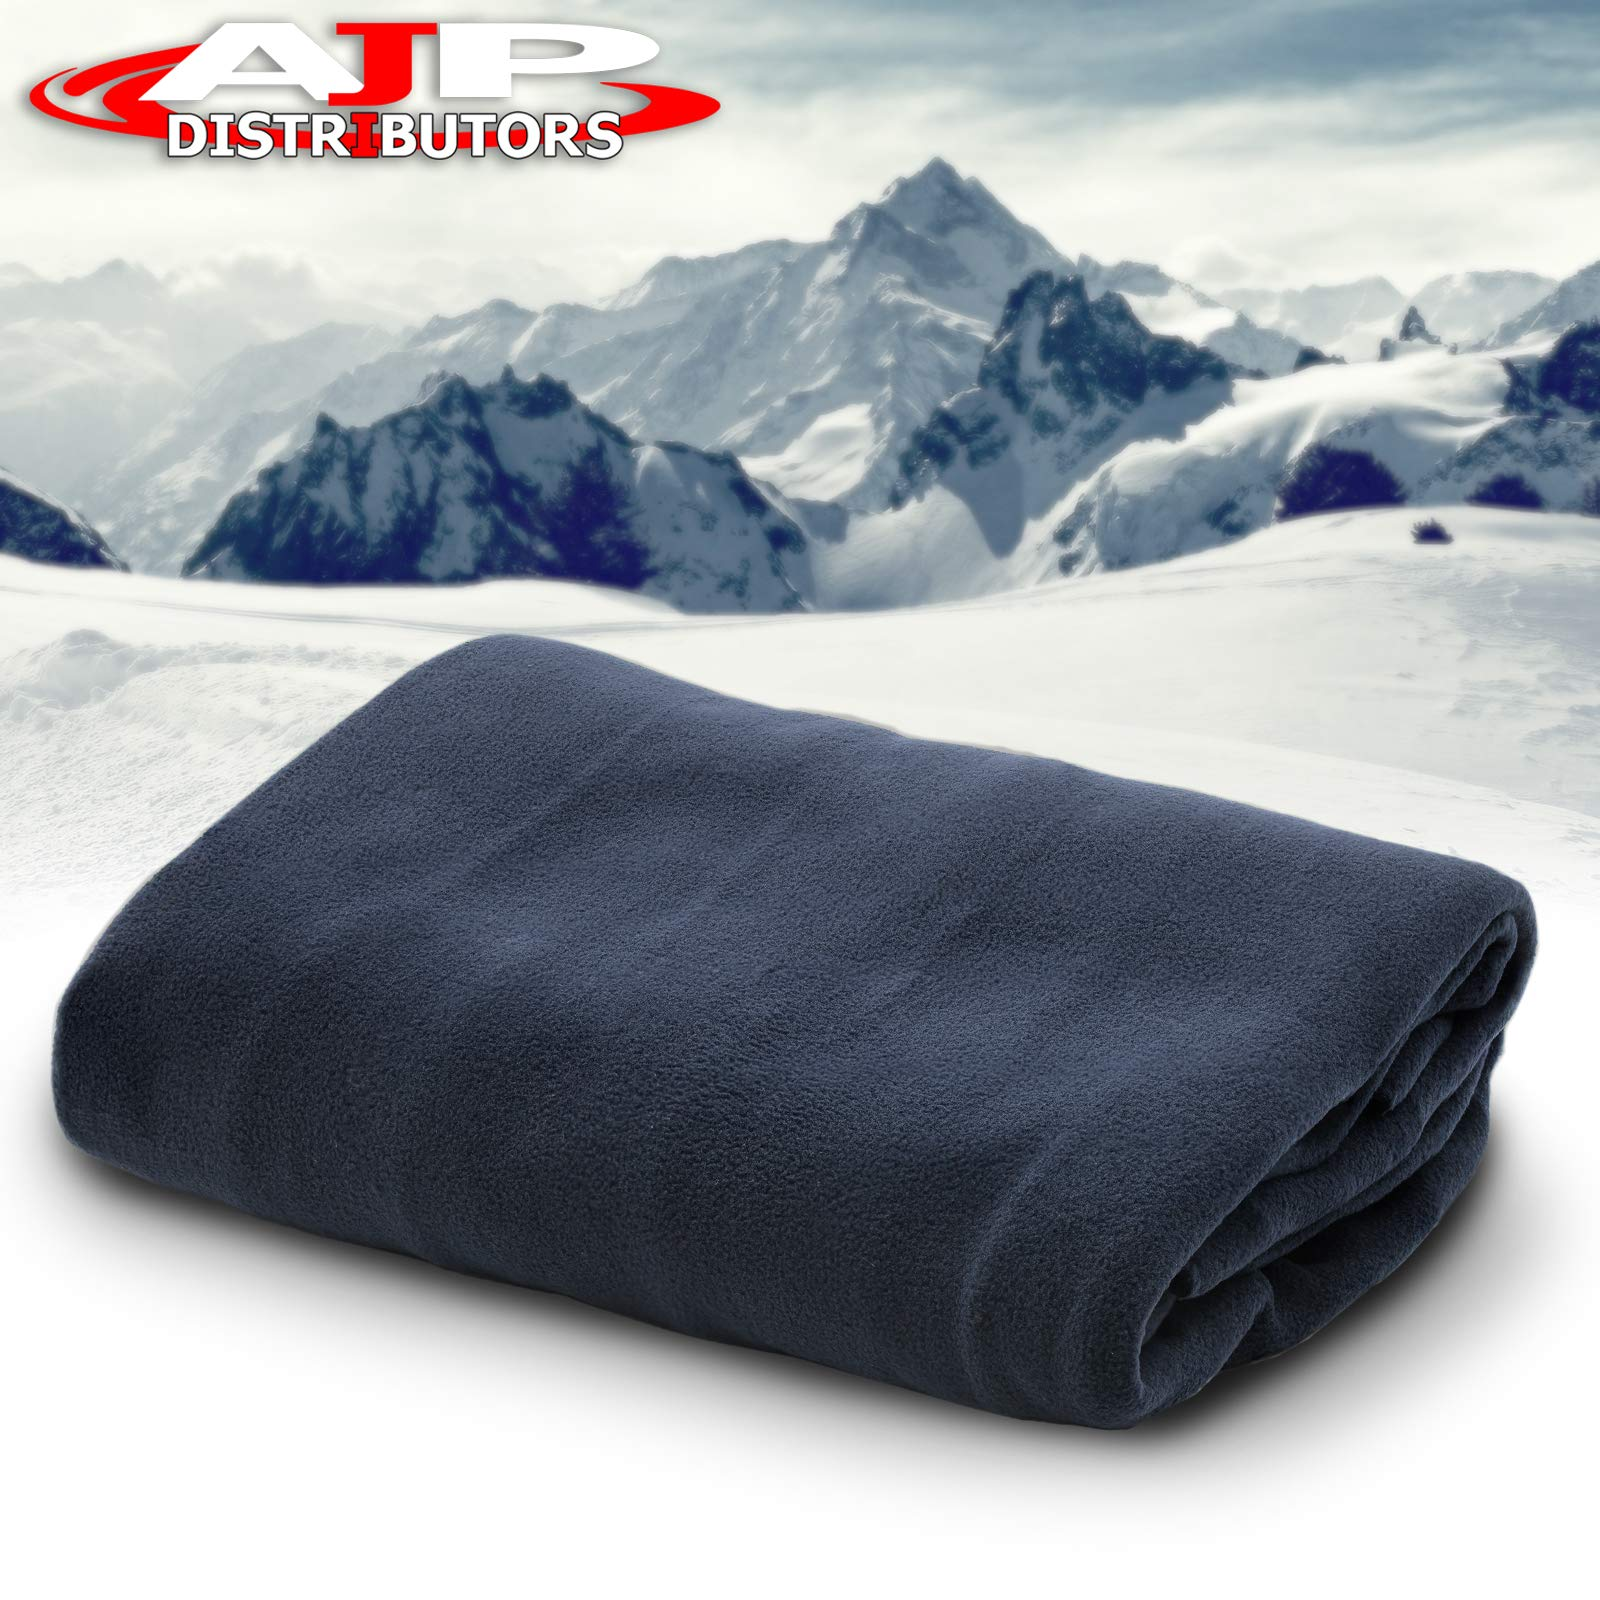 12V Car Truck Heated Blanket Electric Fleece Travel Heating Seat Blanket Throw Automotive Vehicle Road Travel Trip RV Soft Polar Fleece Winter Cold Weather- Anti-Flammable Material (Navy Blue) by AJP Distributors